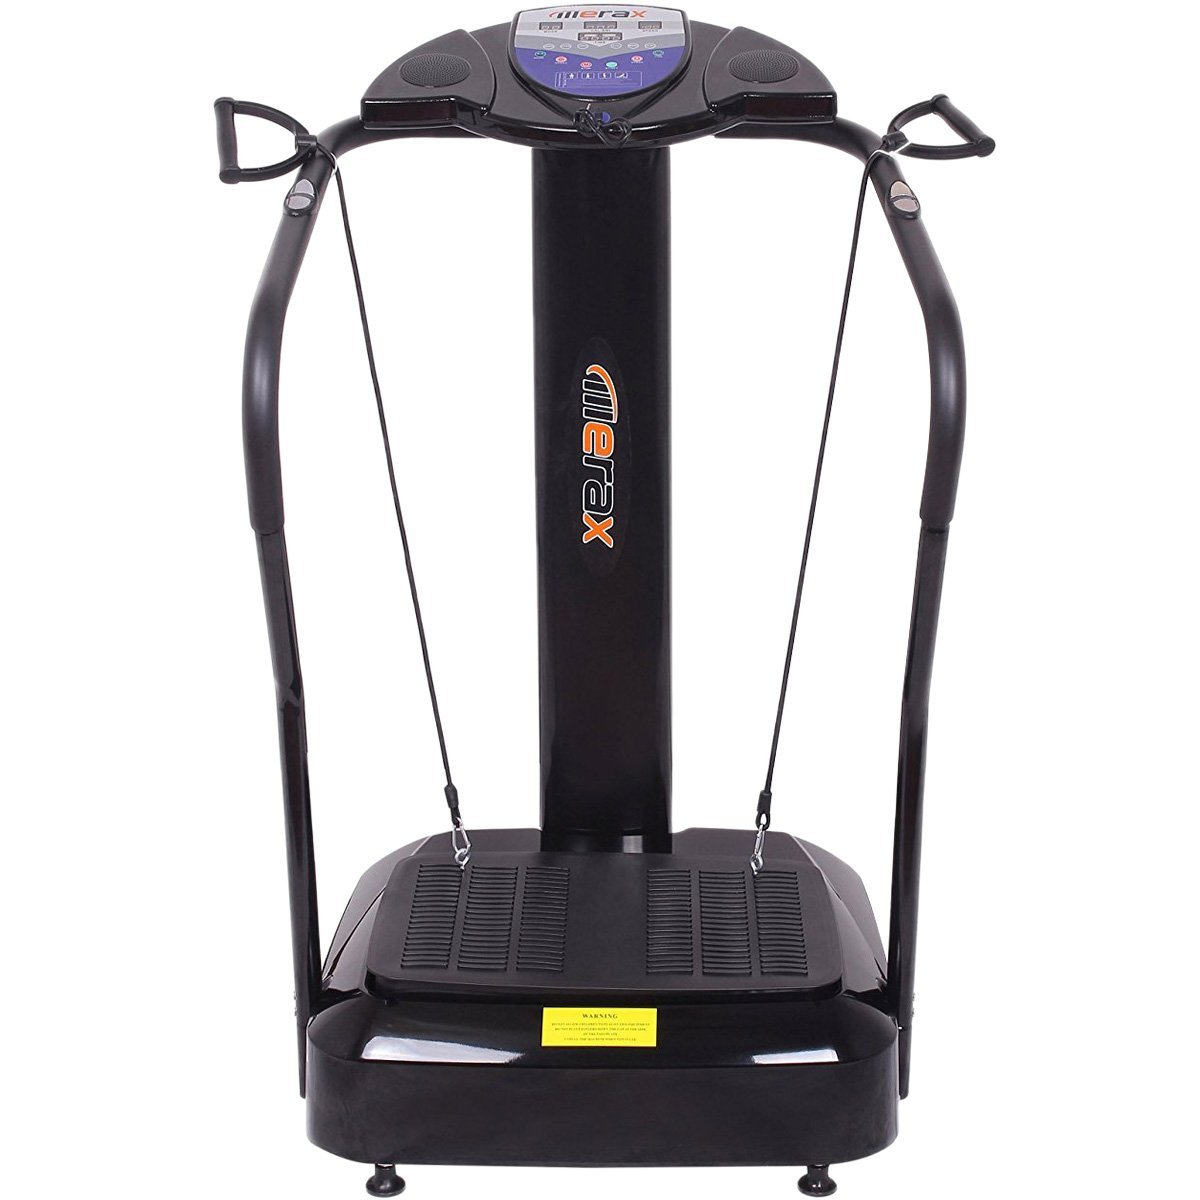 Merax Crazy Fit 2000W Vibration Platform Fitness Machine with 10 Preset Programs